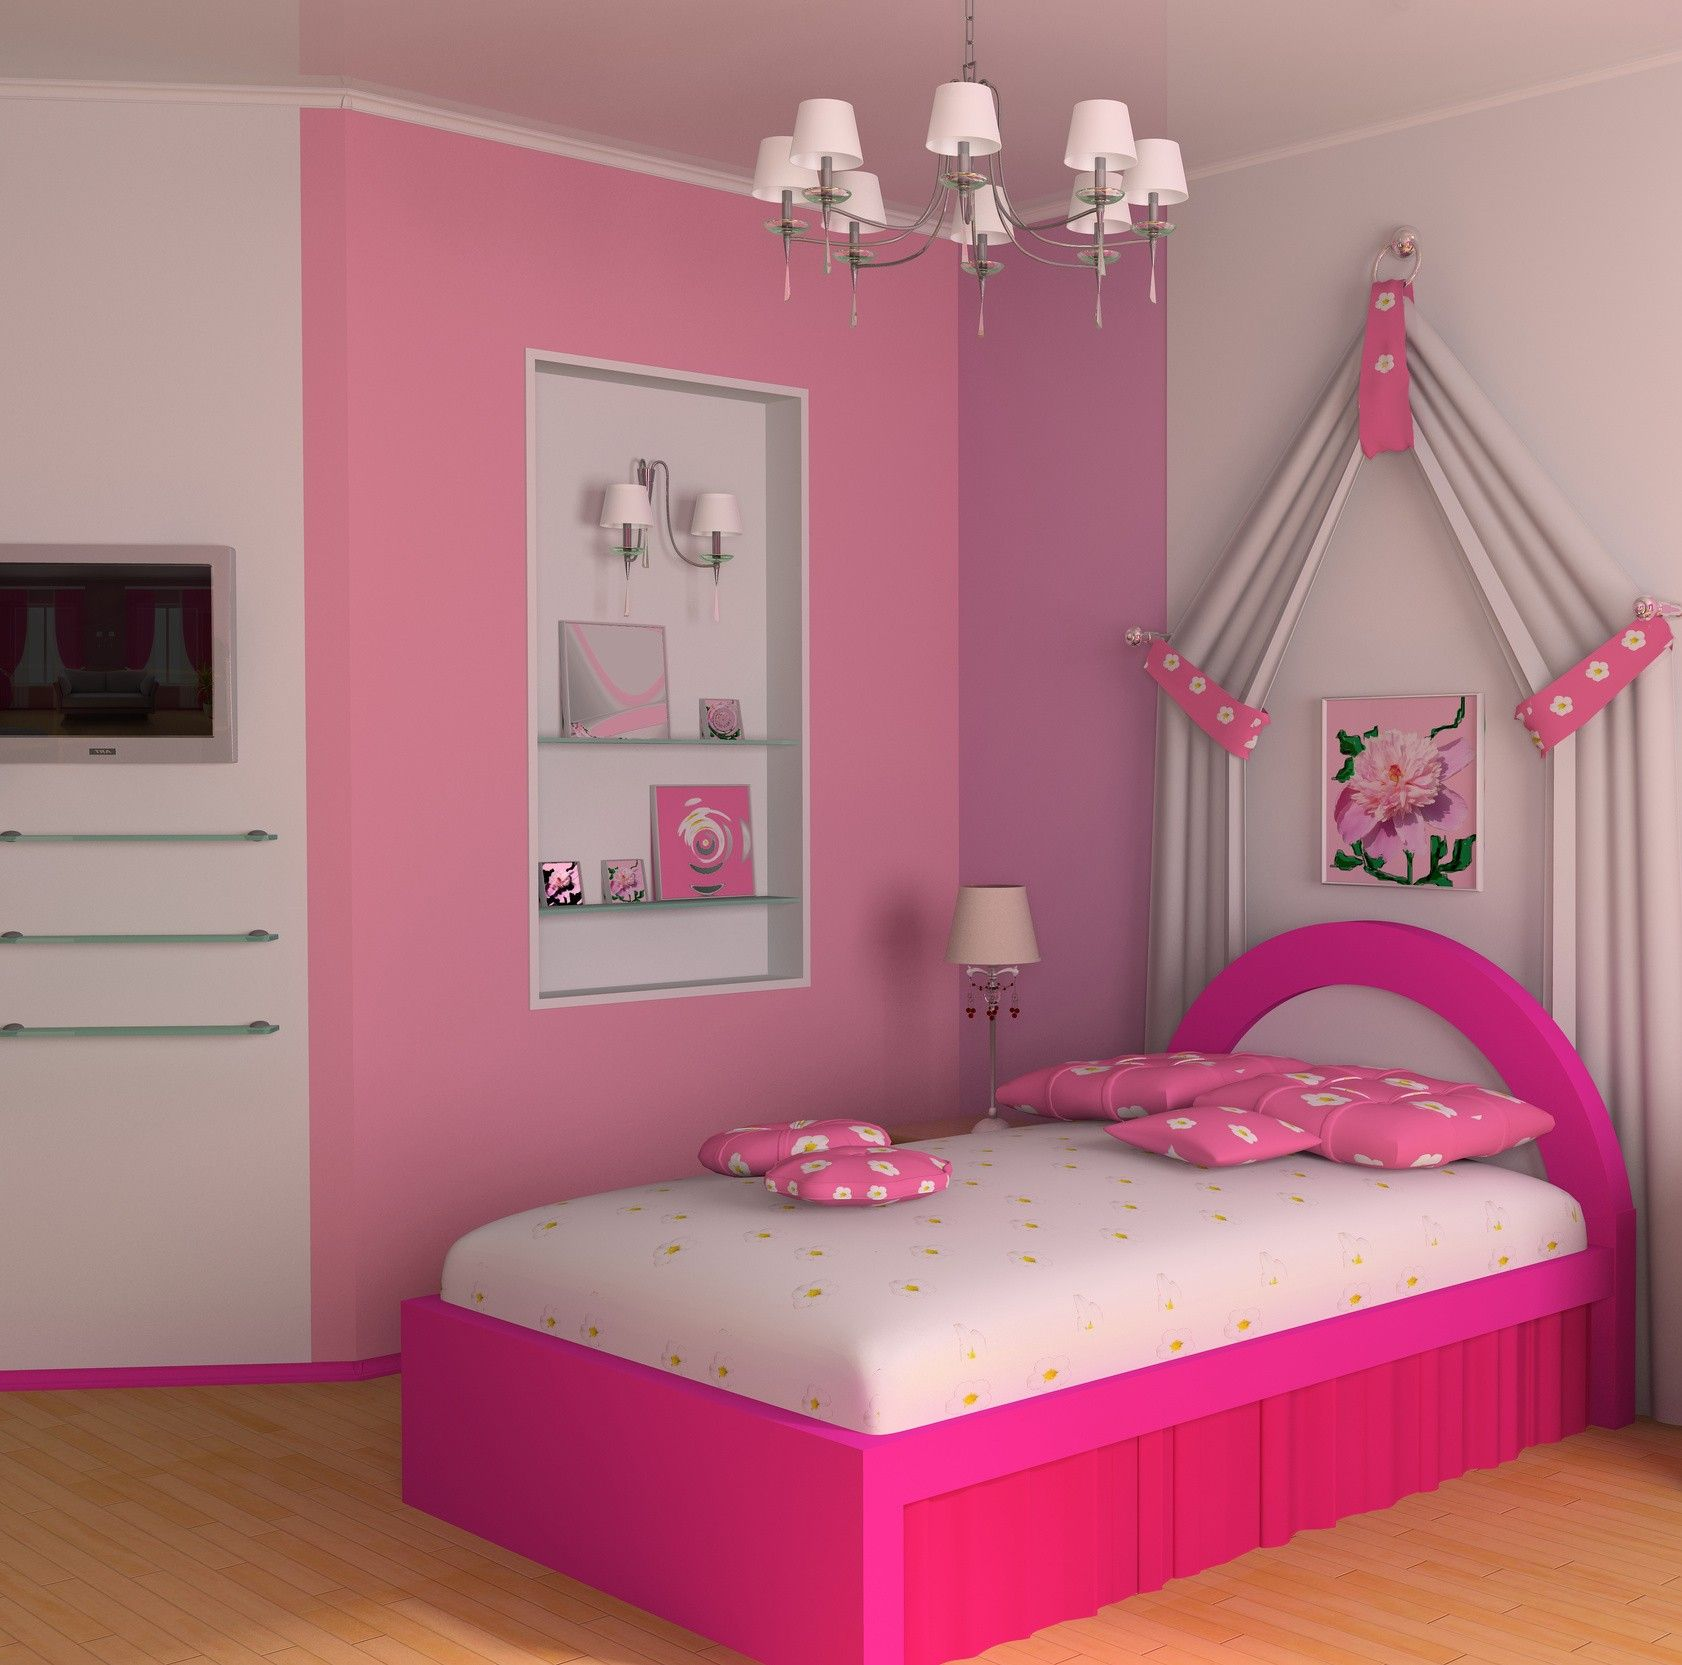 Girls bedroom heavenly pink bed design on teenage girl bedroom ideas comes with entrancing pink wall accent paint decor ideas plus agreeable chandelier idea